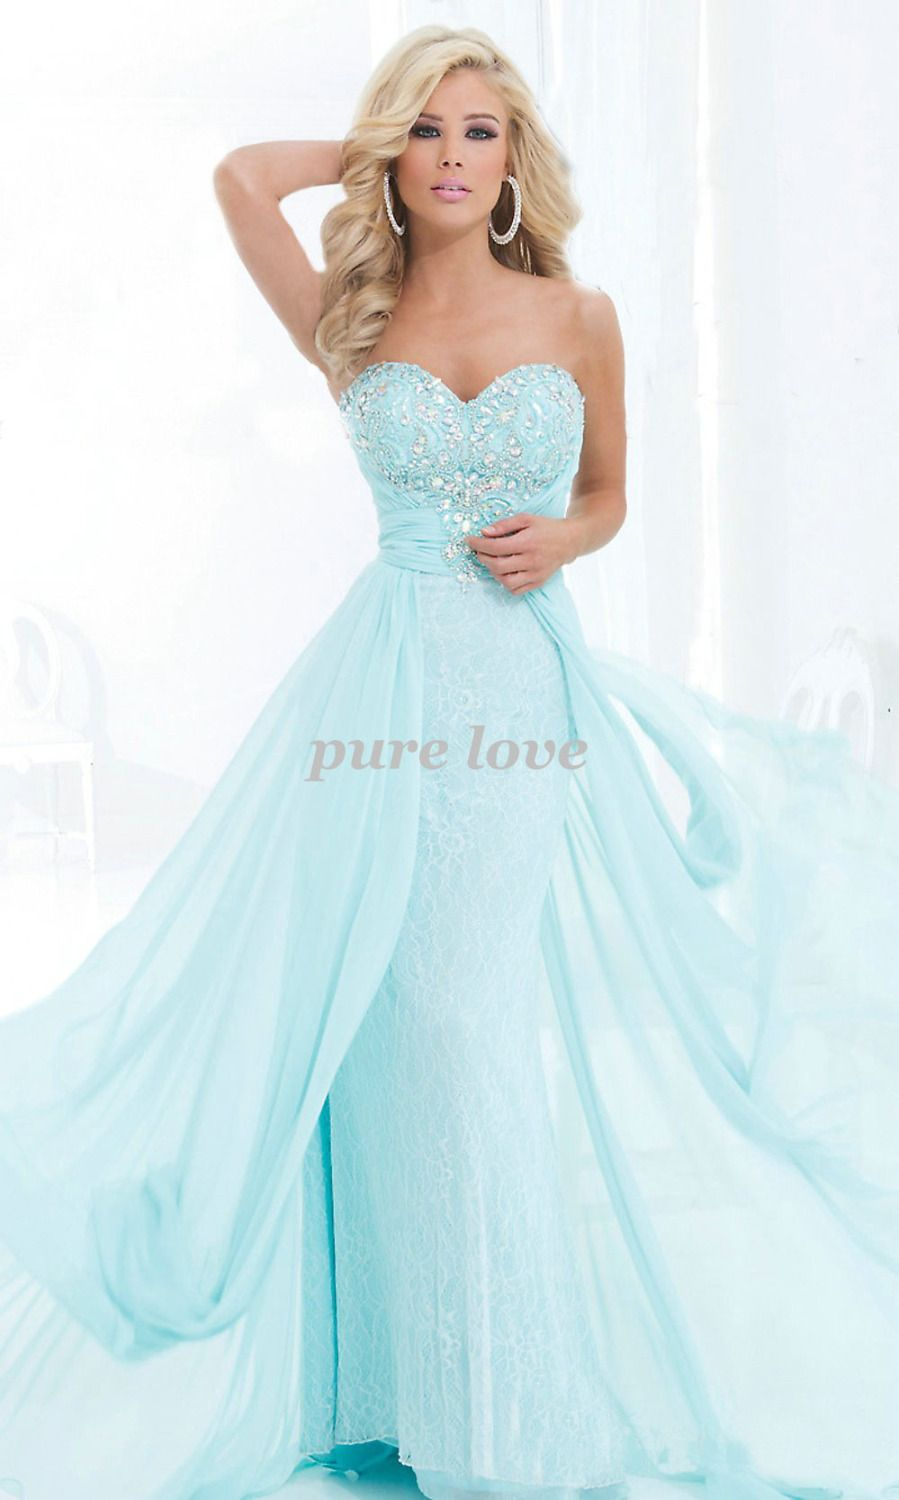 Latest 50 Sexy Prom Dresses for Girls | Prom, Lights and Free